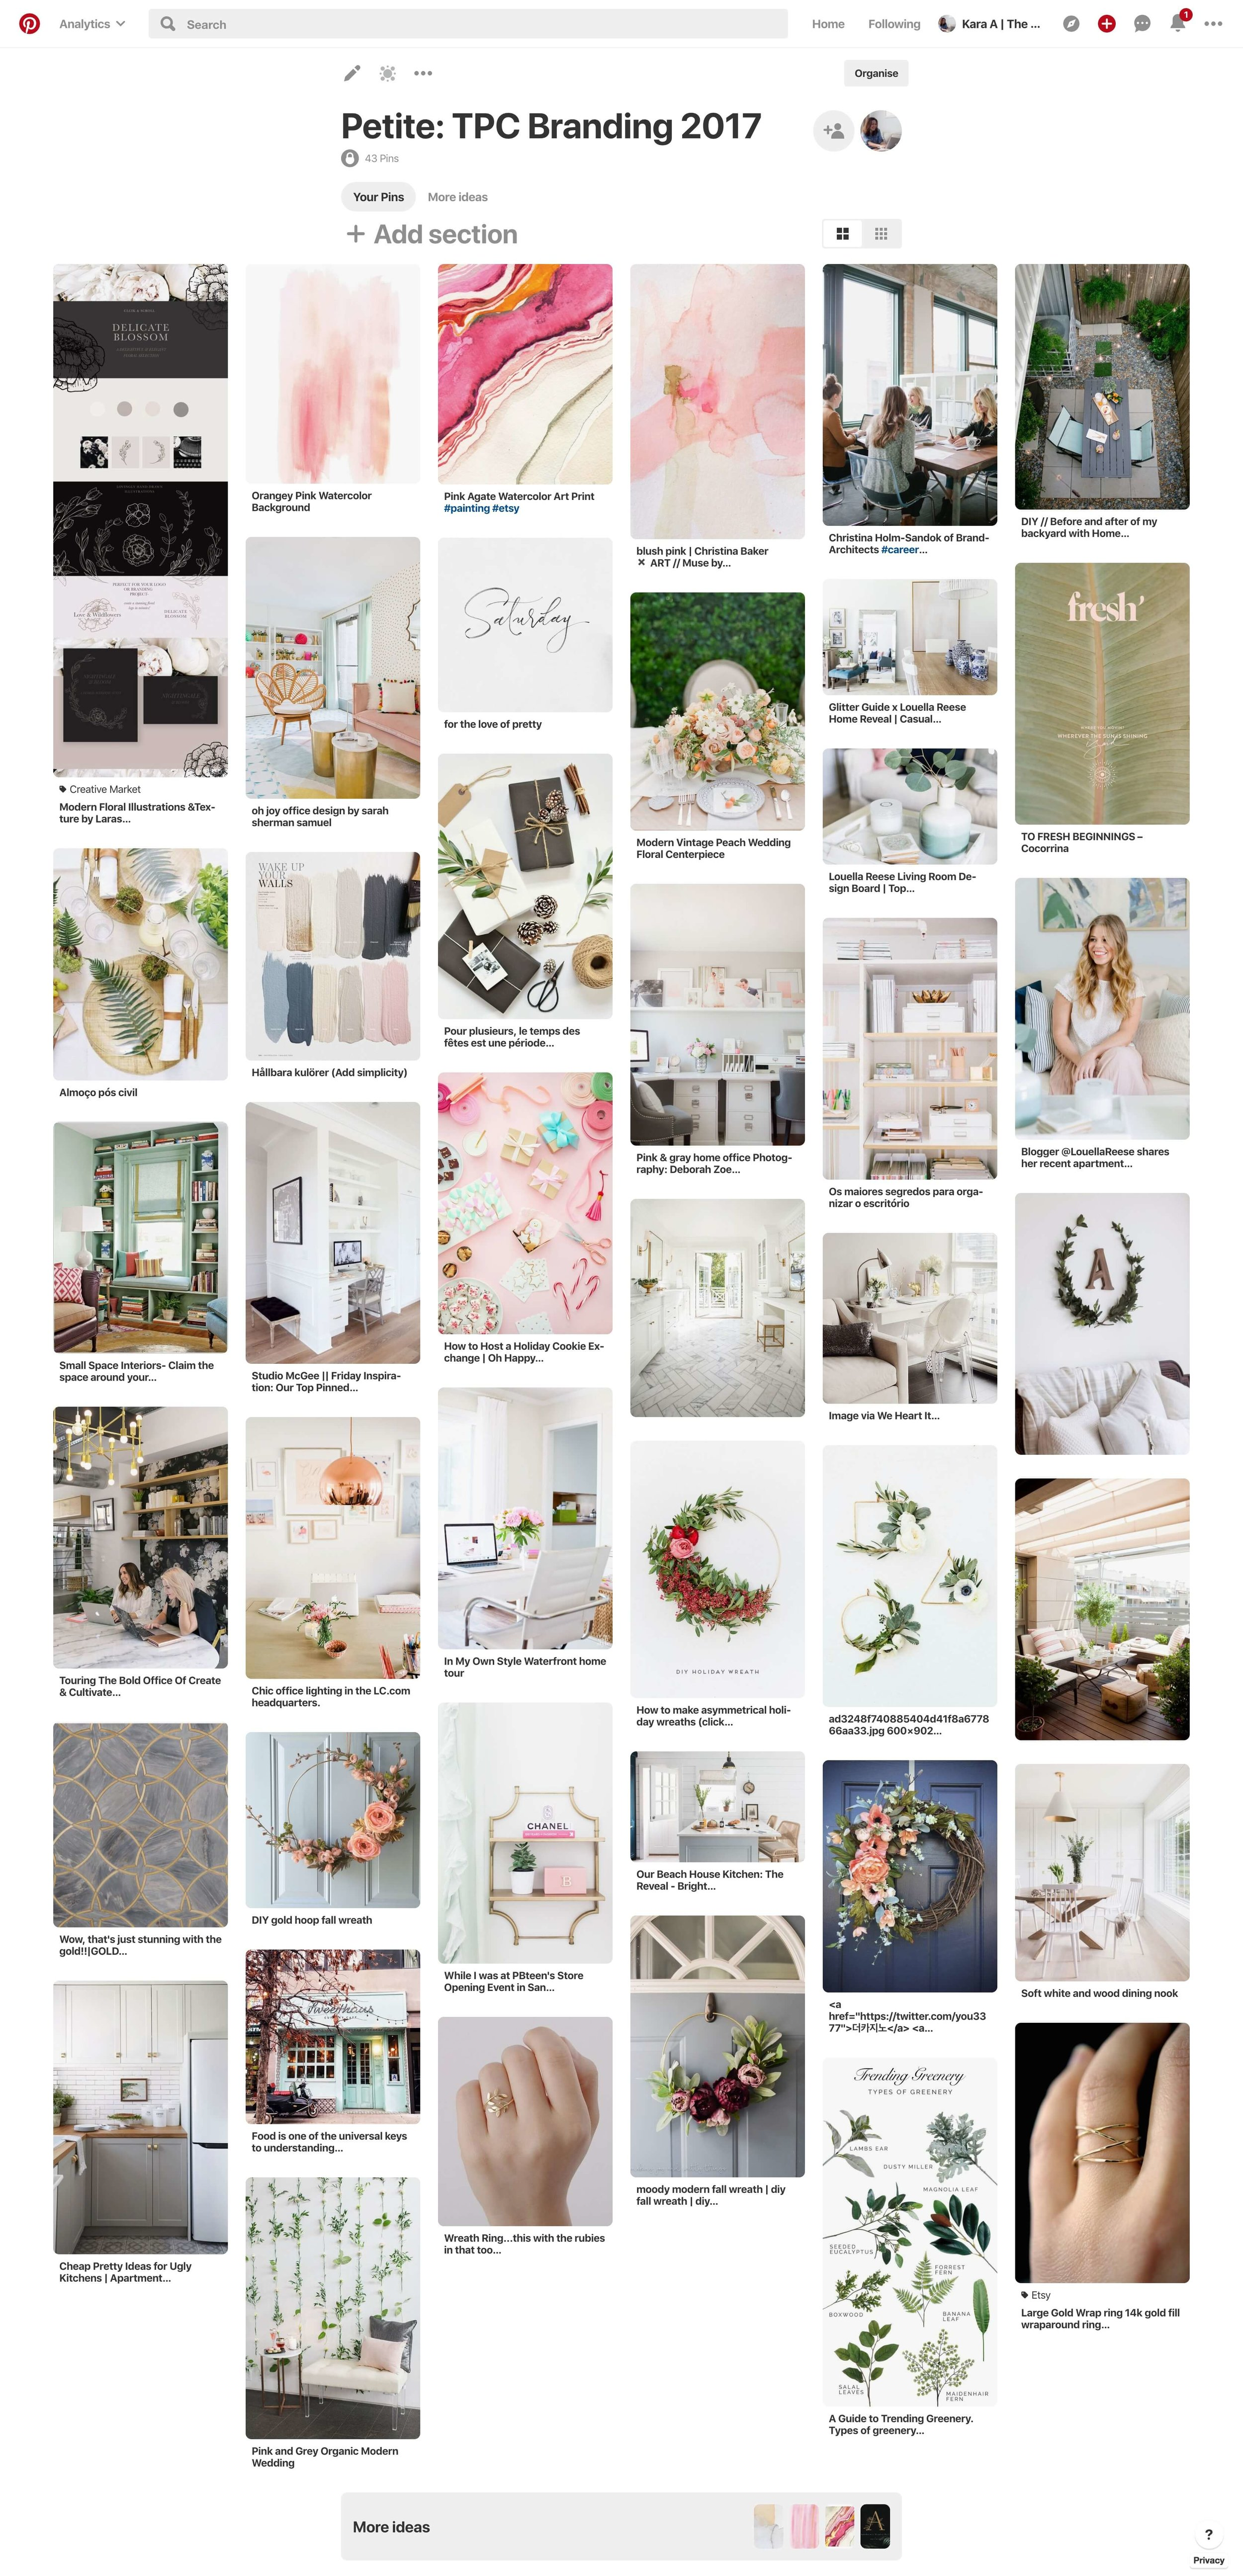 My 2017 Pinterest board went a little over the 30 recommended pins, but this was pre-curation and the dominant theme, as you could tell, was classic, clean lines and nature.